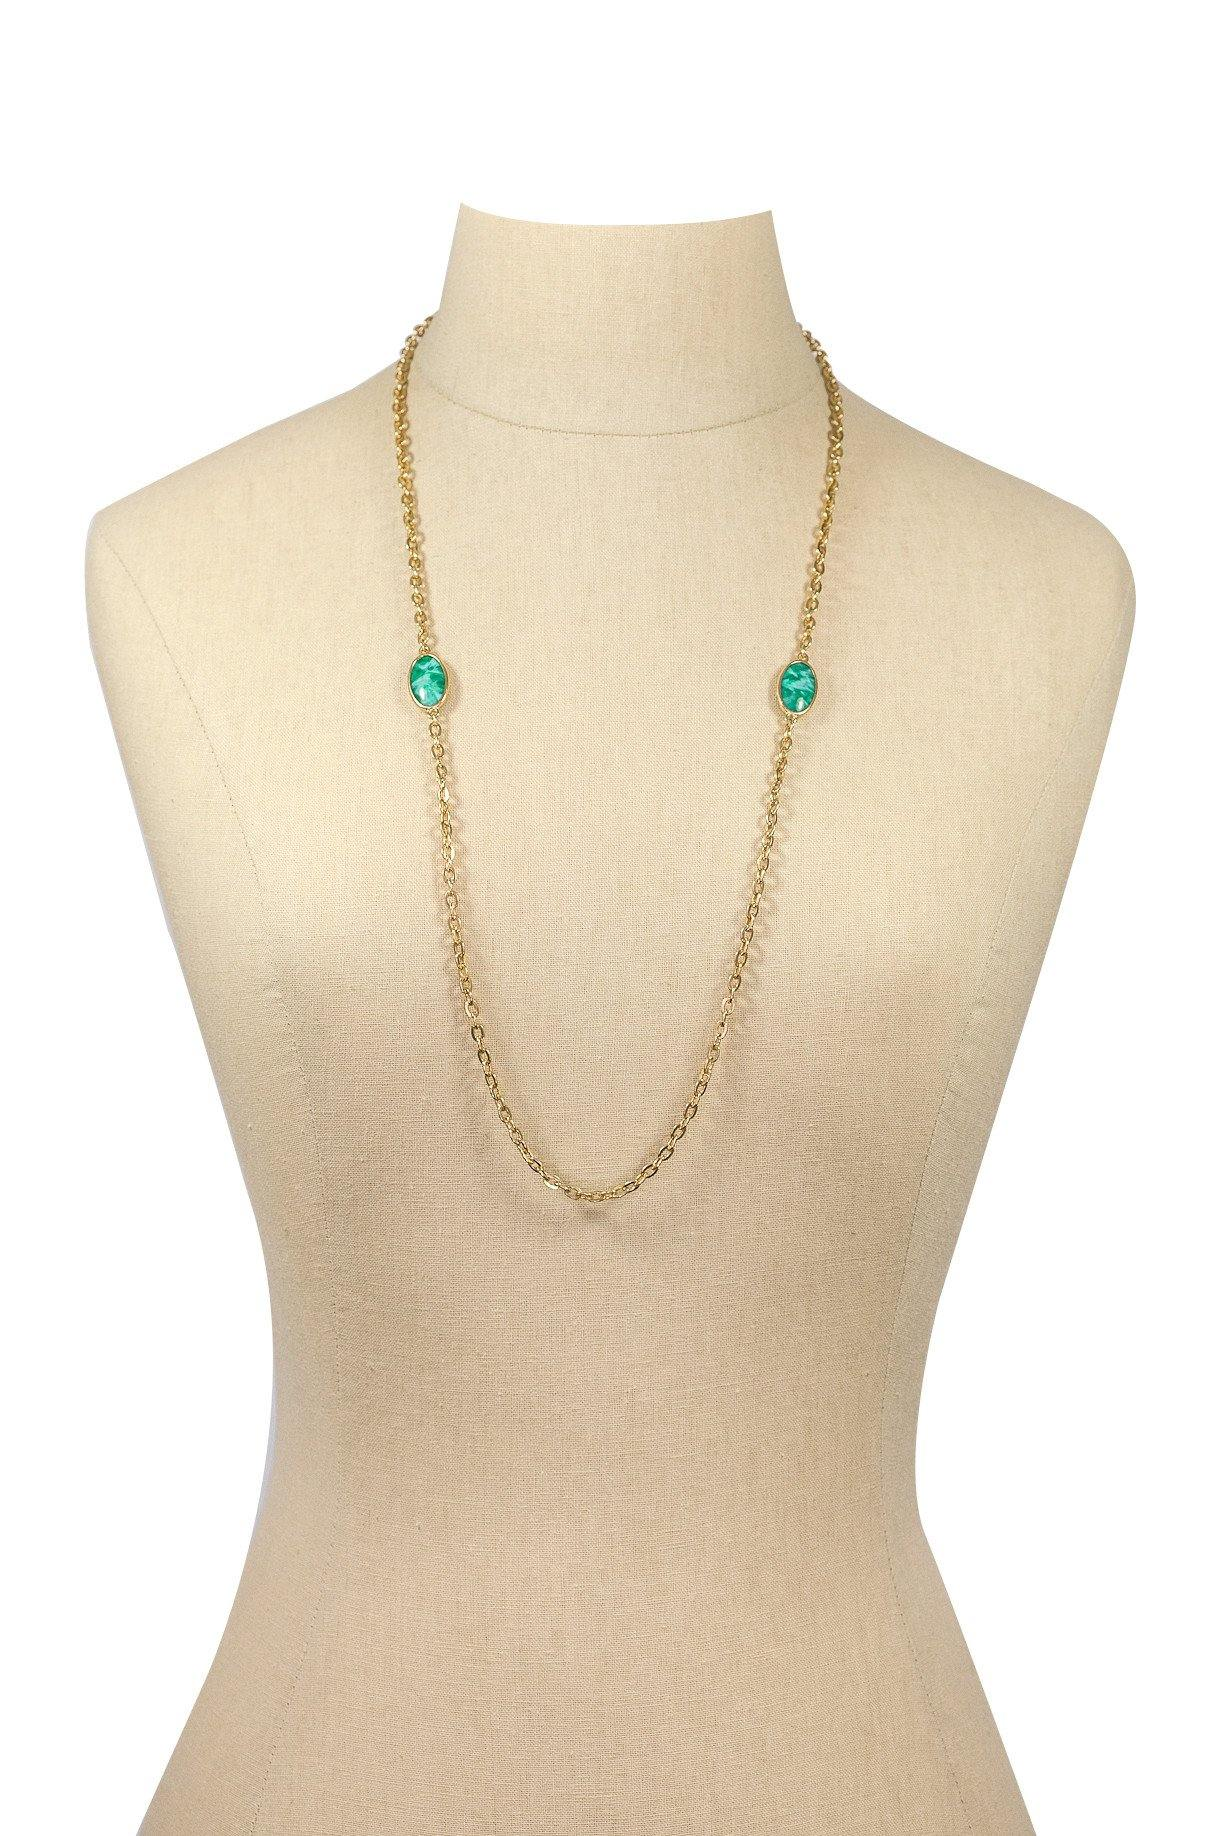 70's__Emmons__Stone Layering Necklace